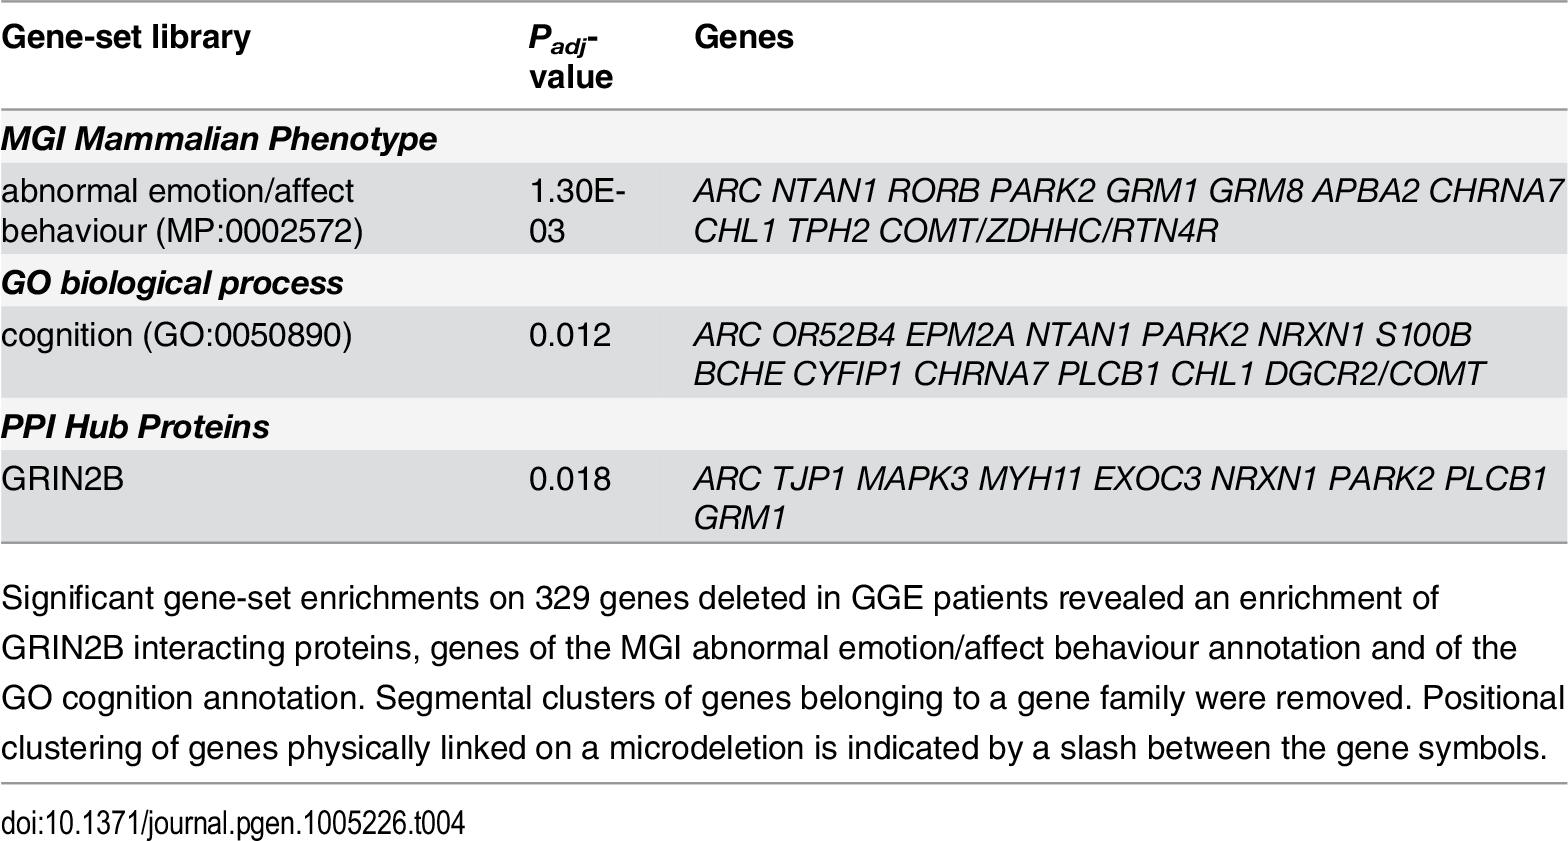 Functional gene enrichment and network analysis.